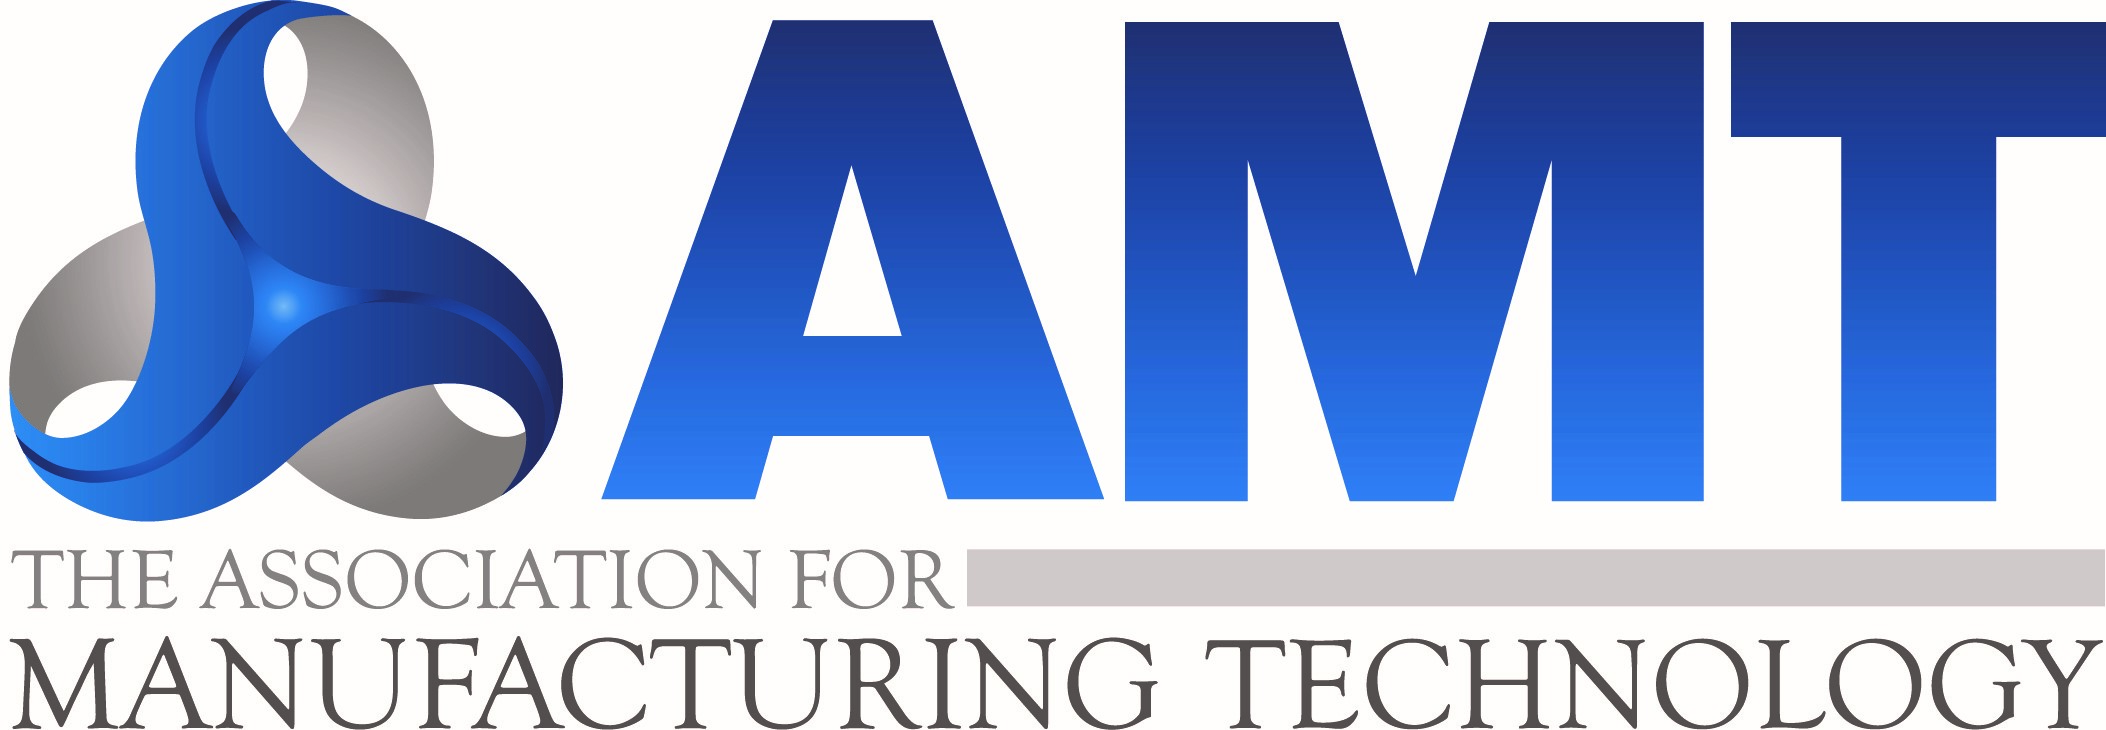 Association for Manufacturing Technology